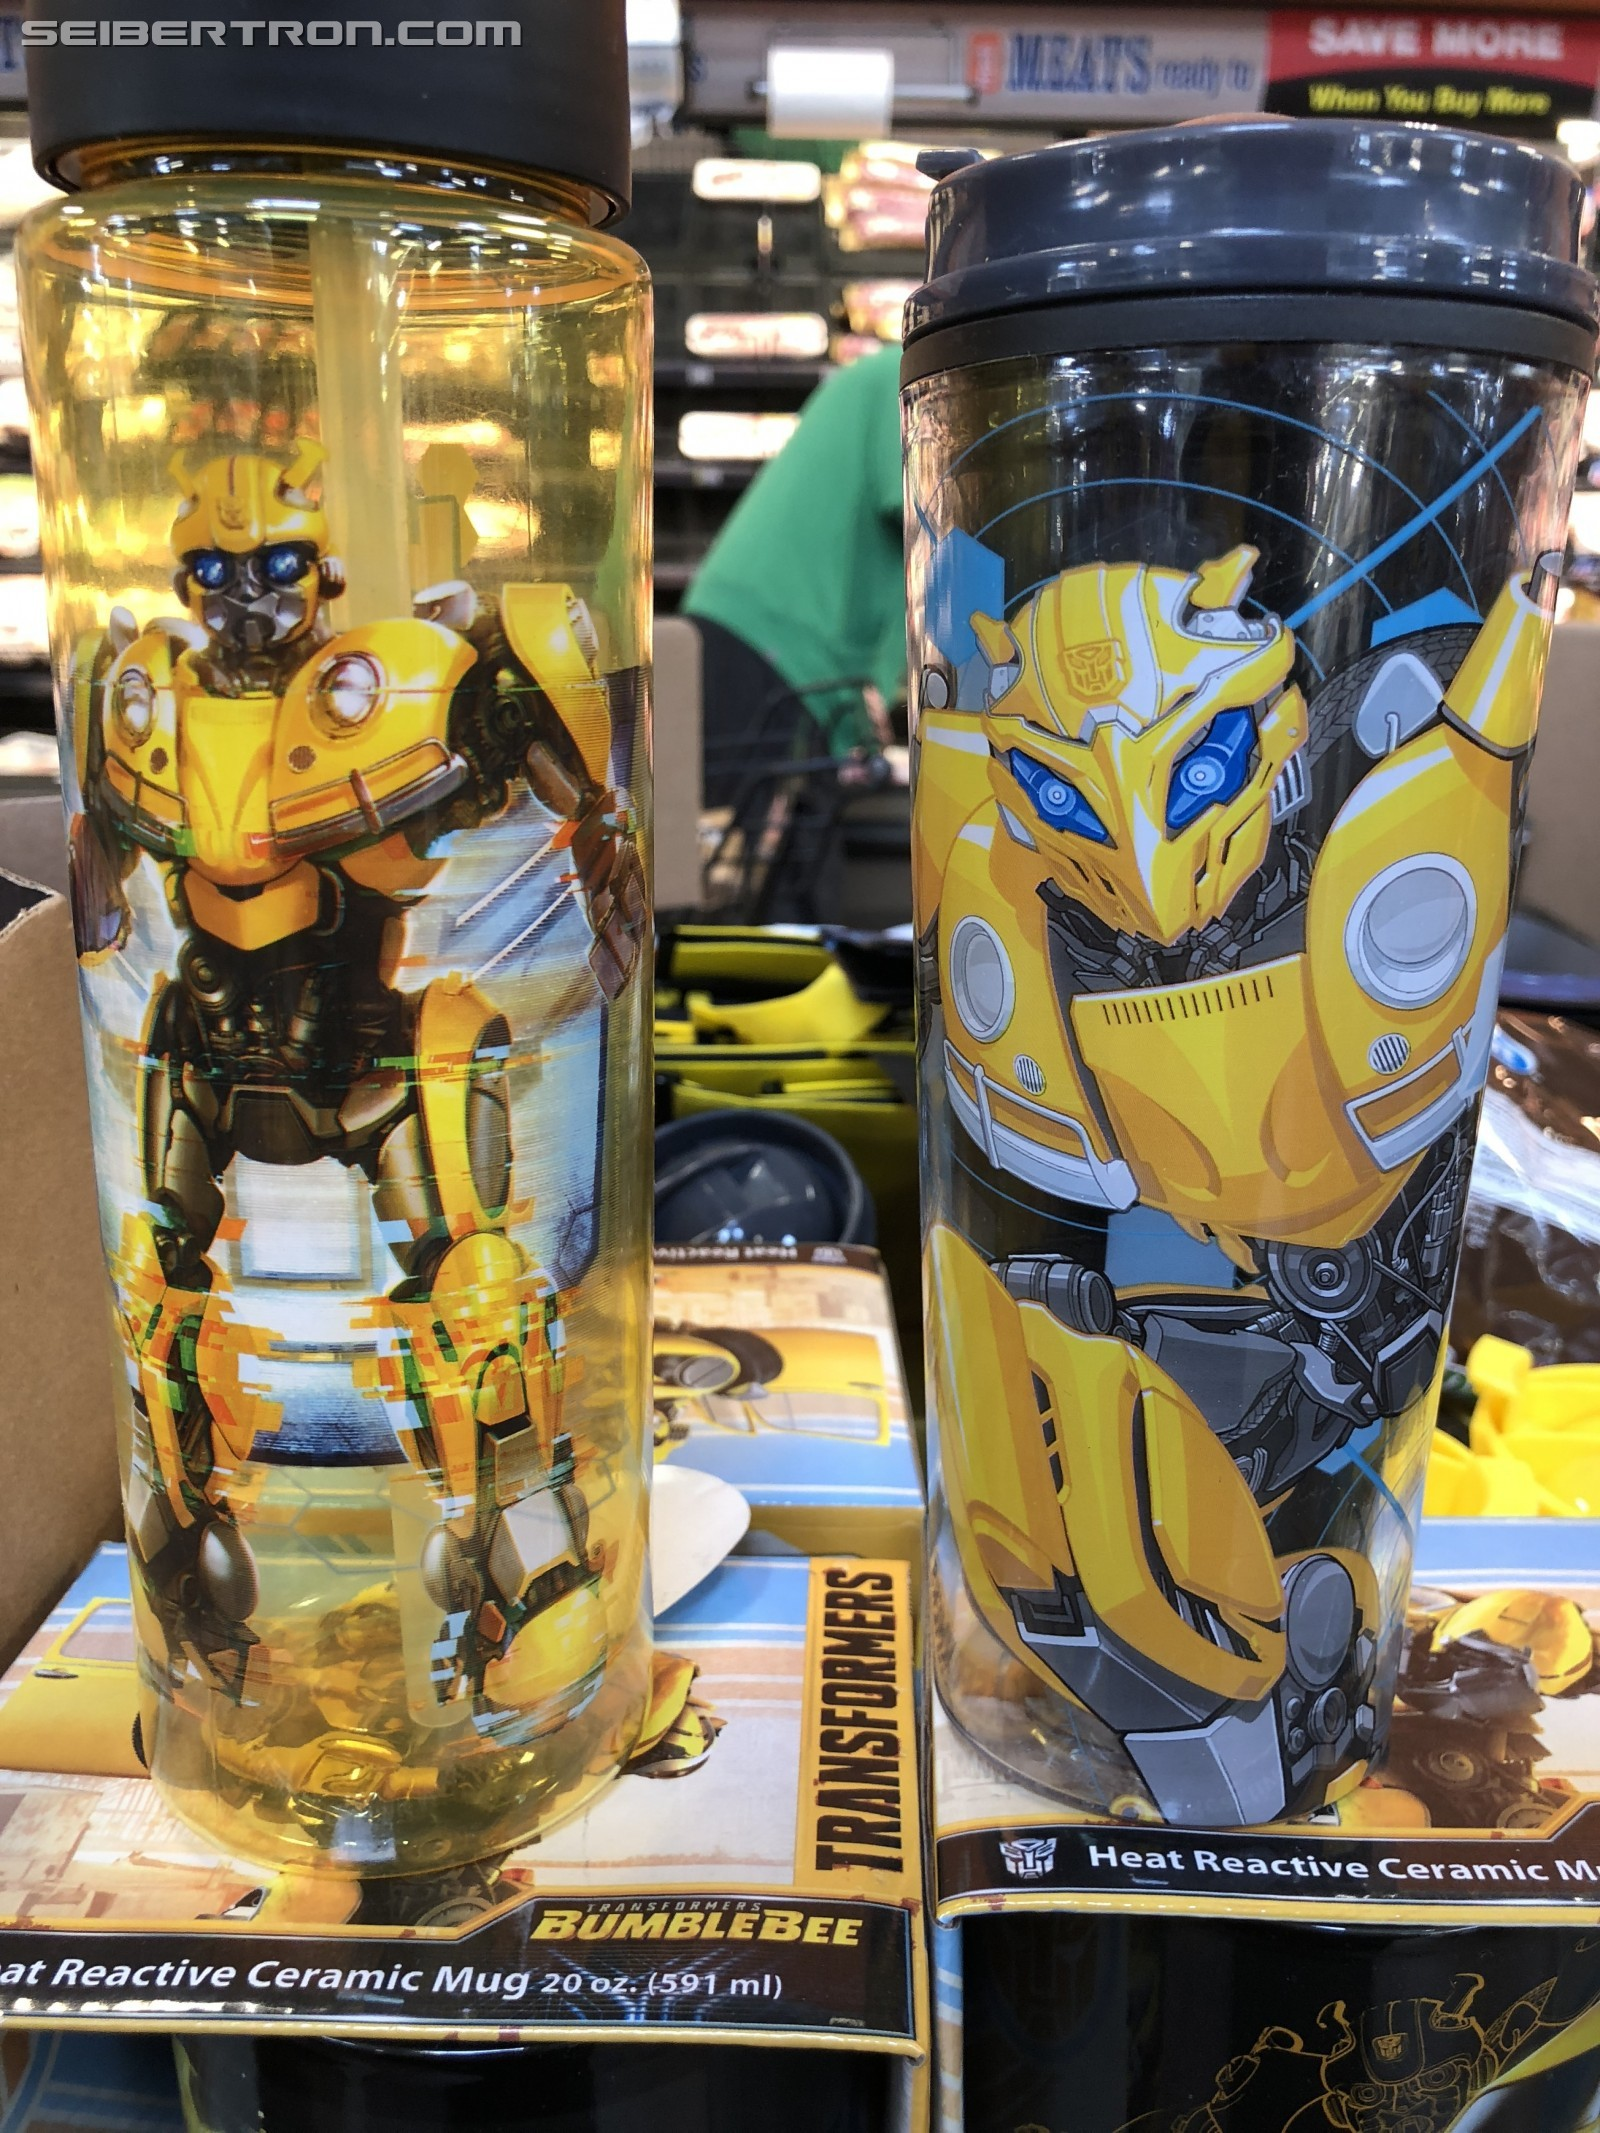 Transformers News: Transformers Bumblebee Movie Merchandise Displays Appearing at Variety of US Stores